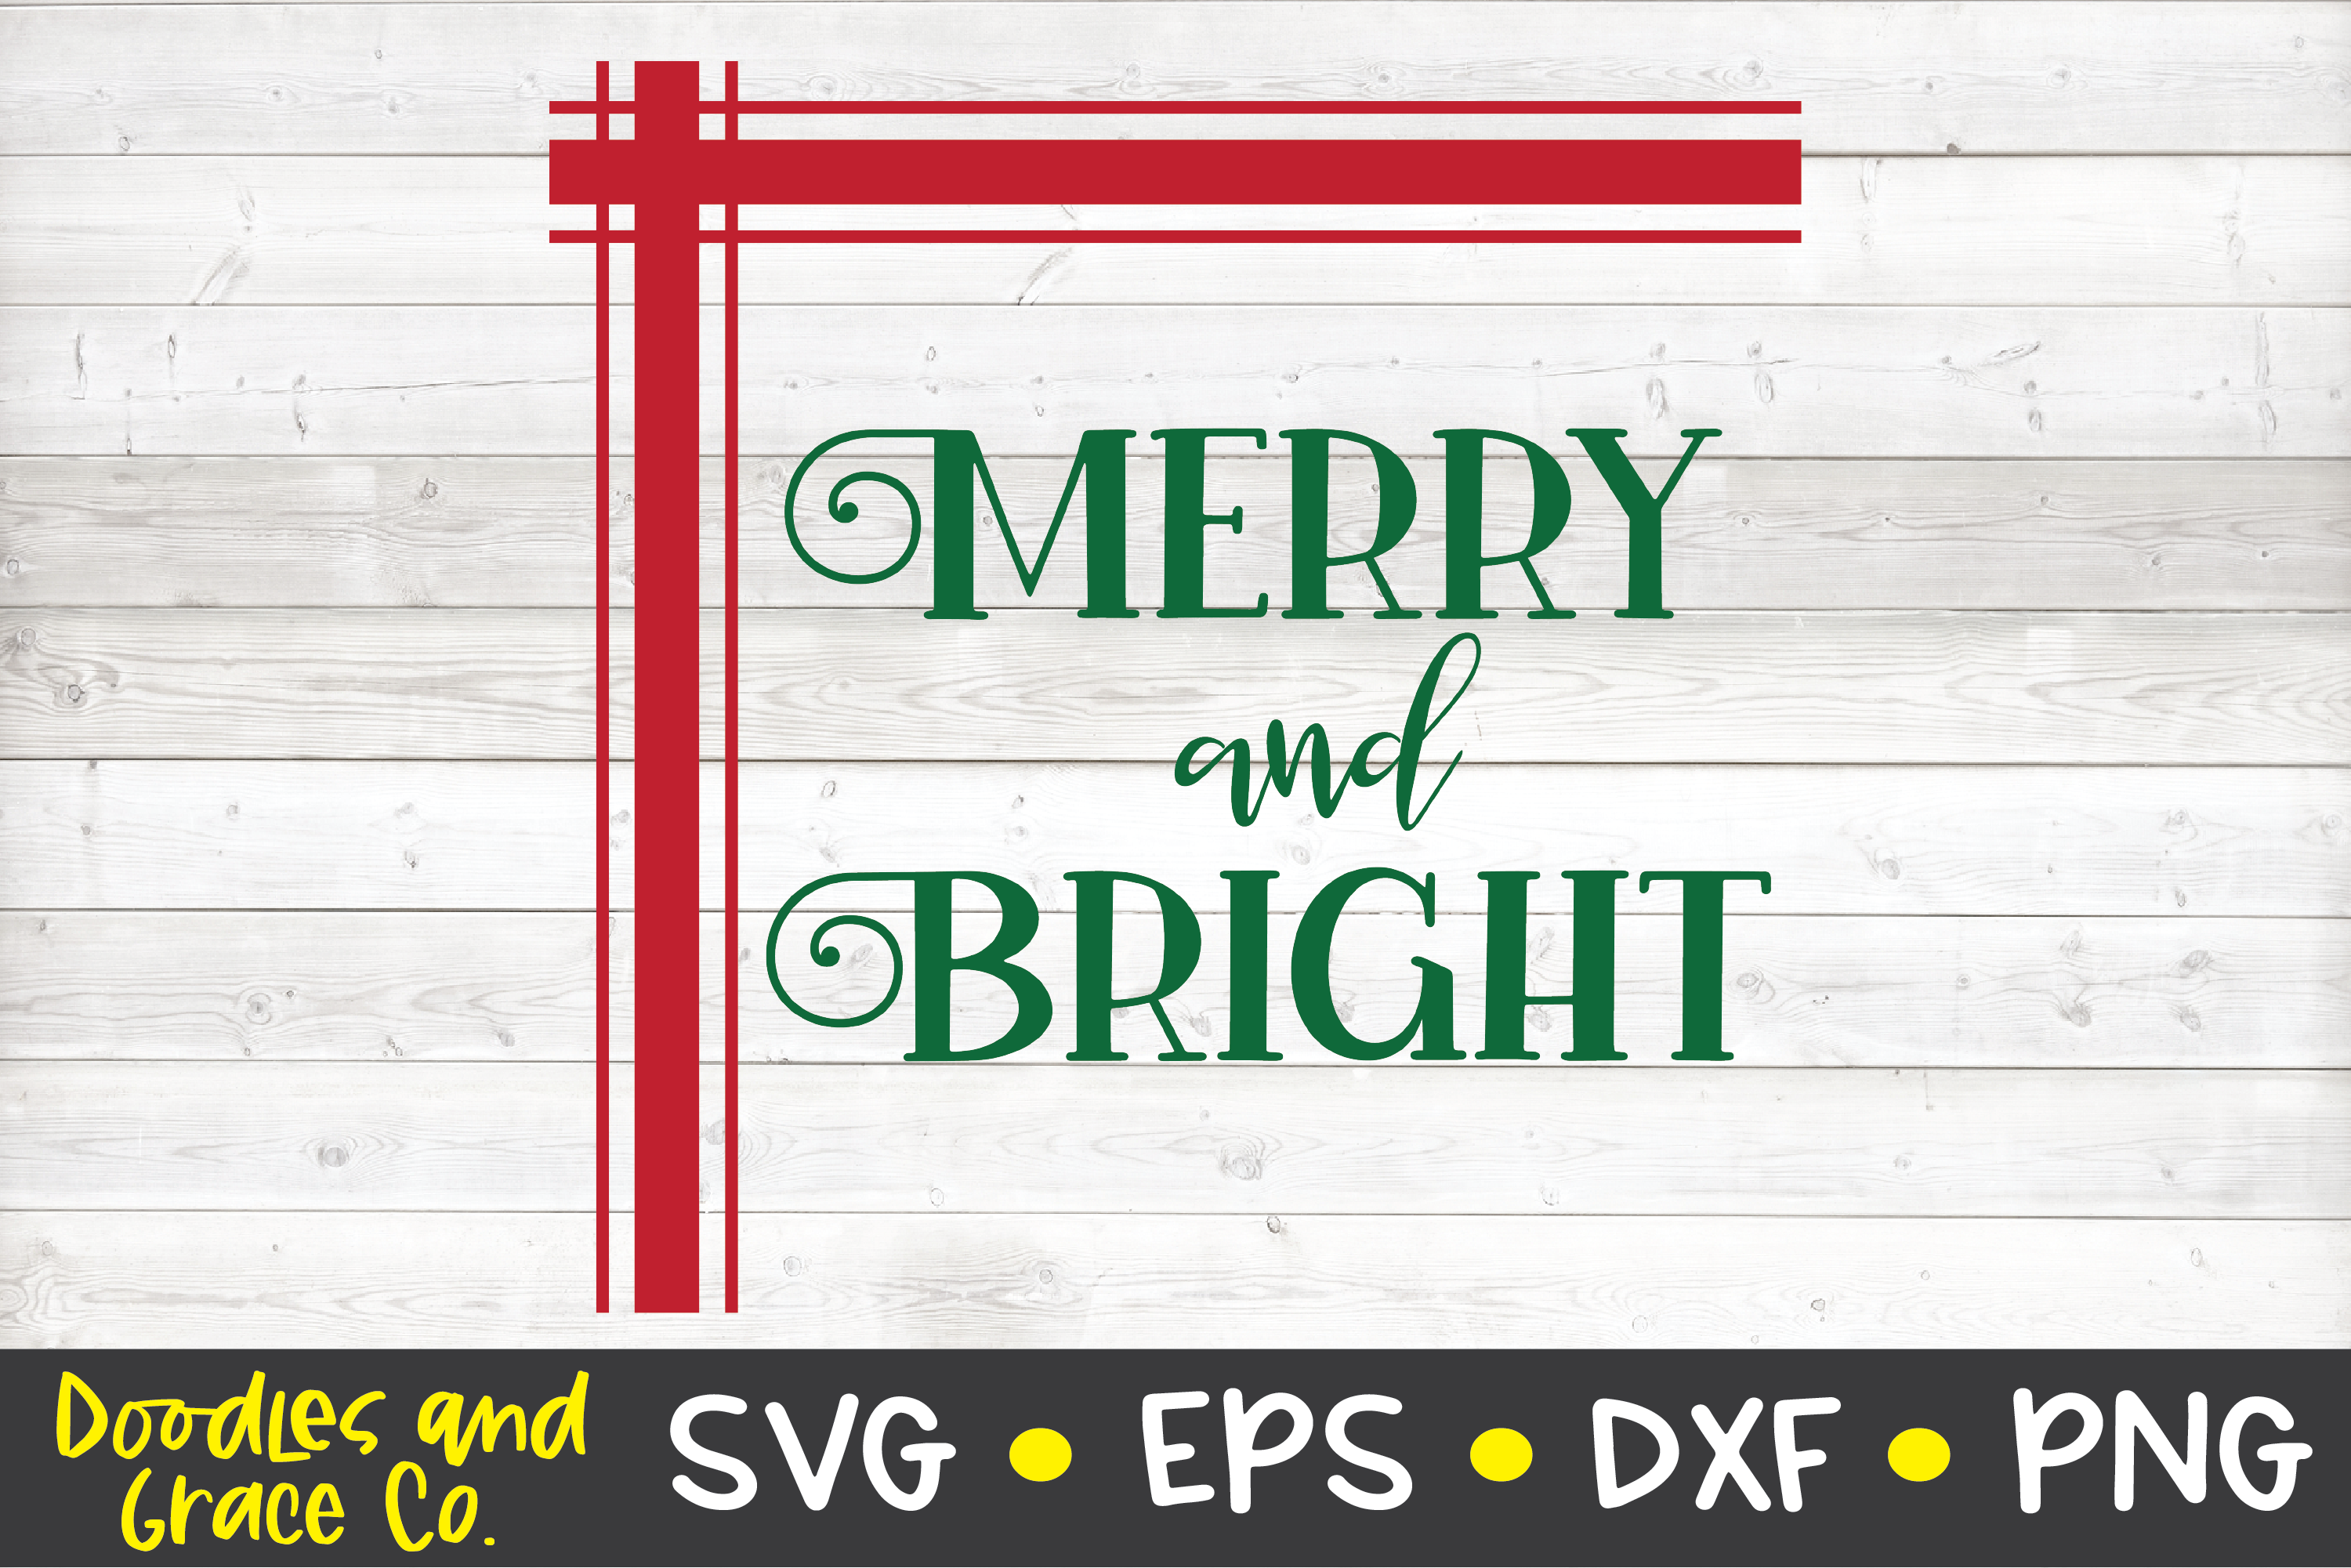 Merry and Bright SVG - Christmas SVG example image 2